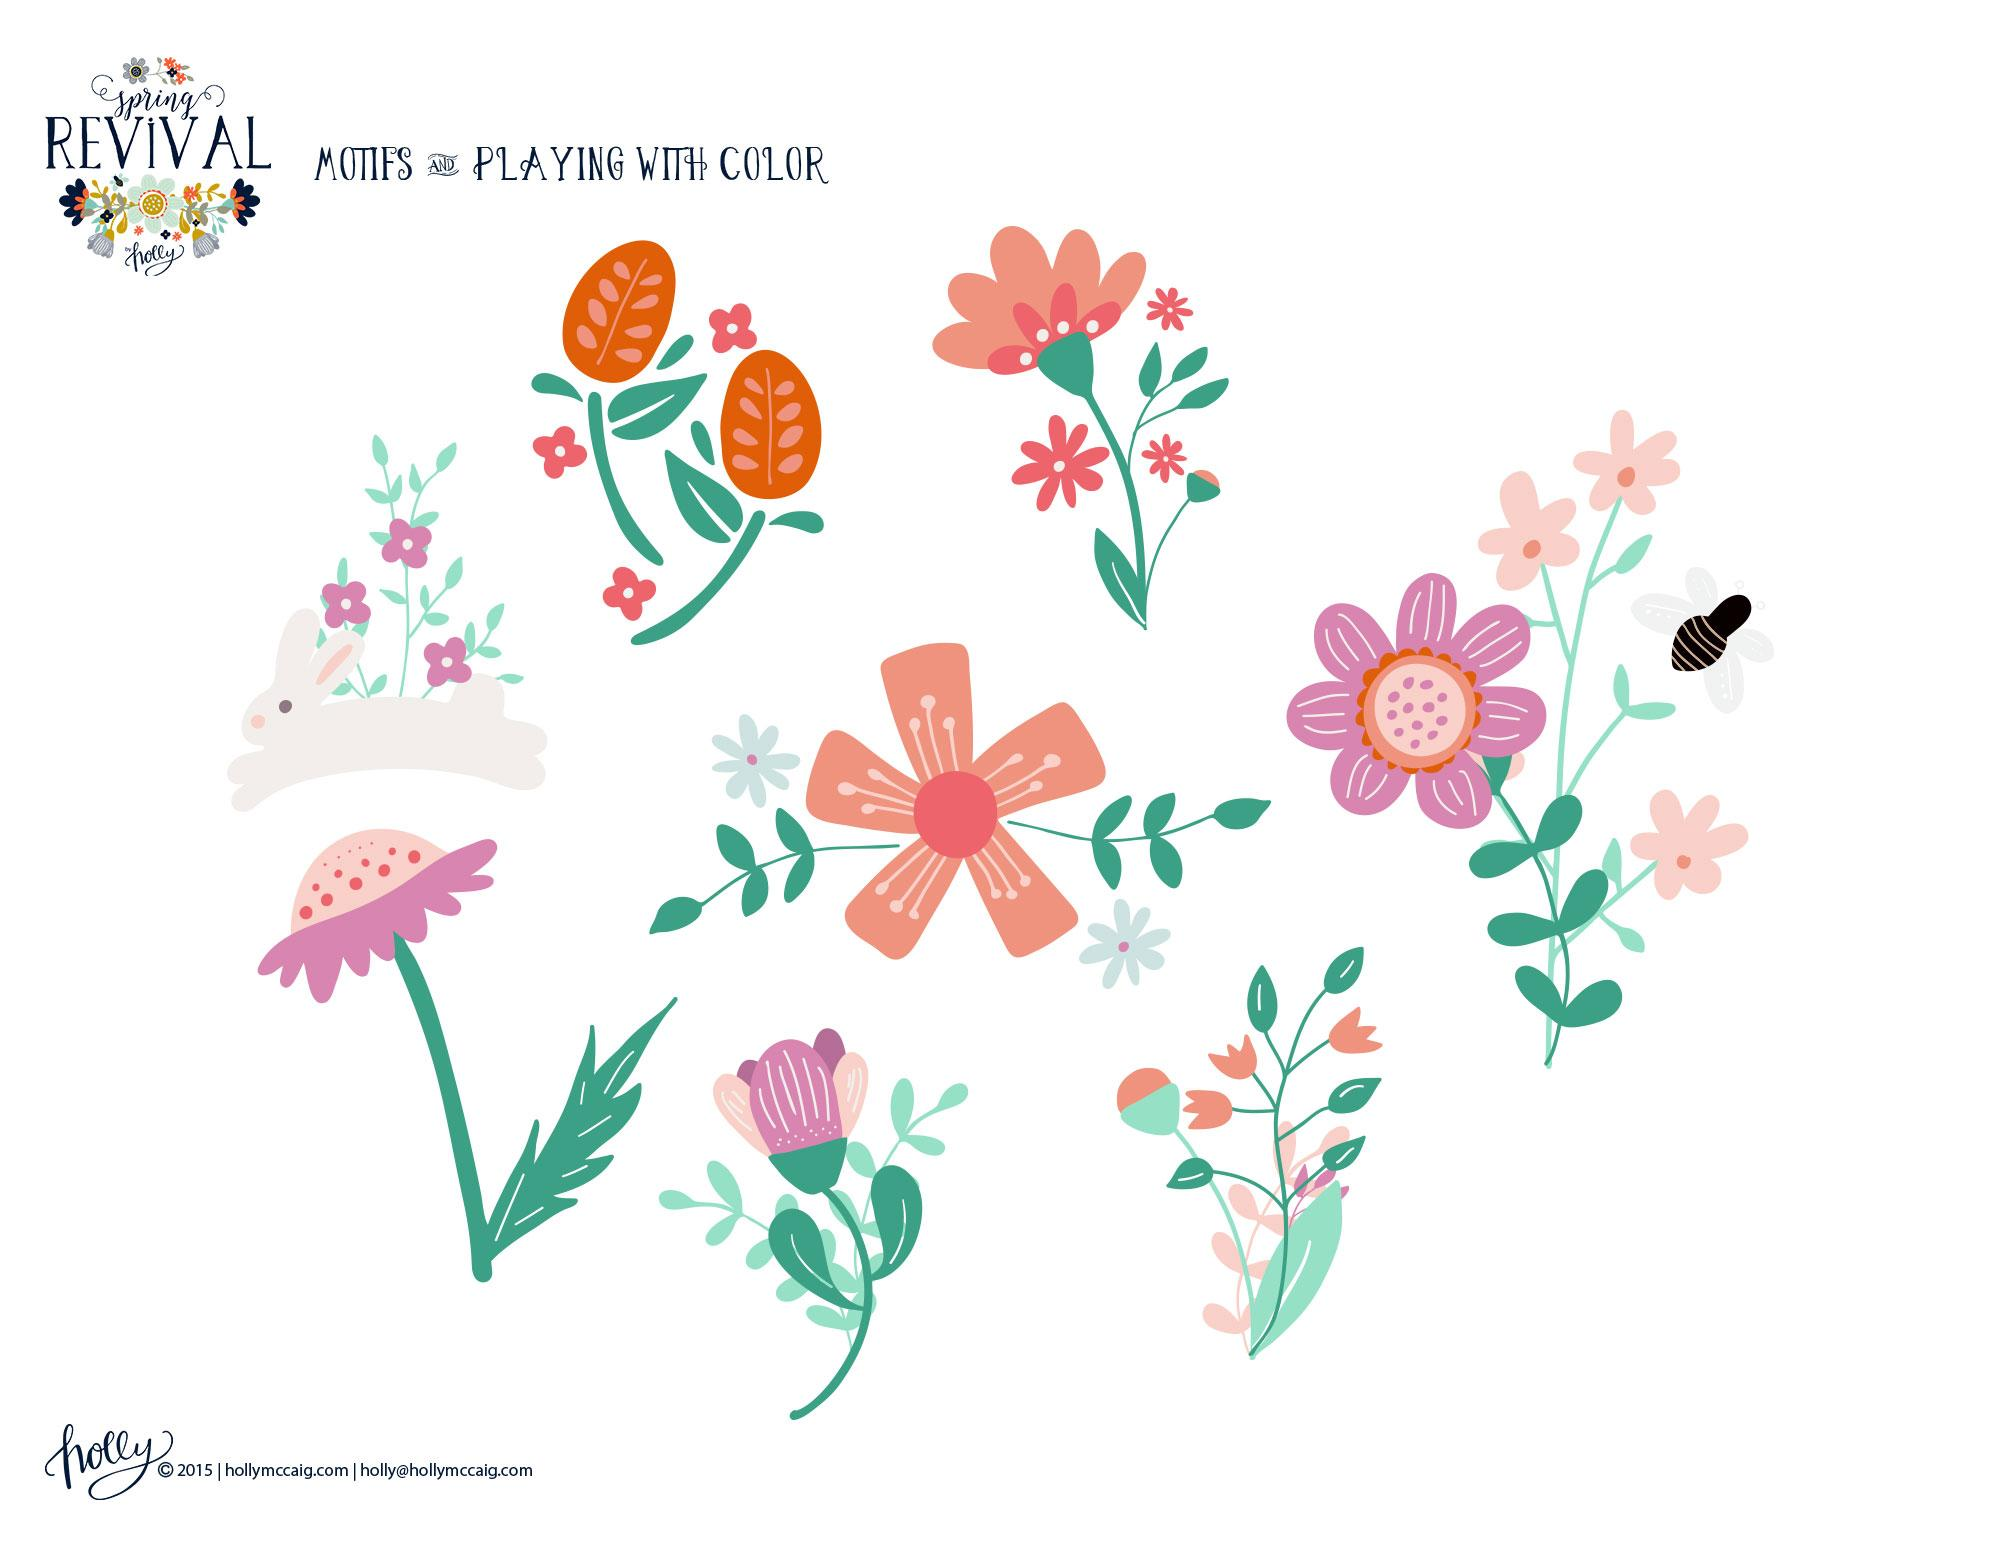 spring revival clipart - photo #42